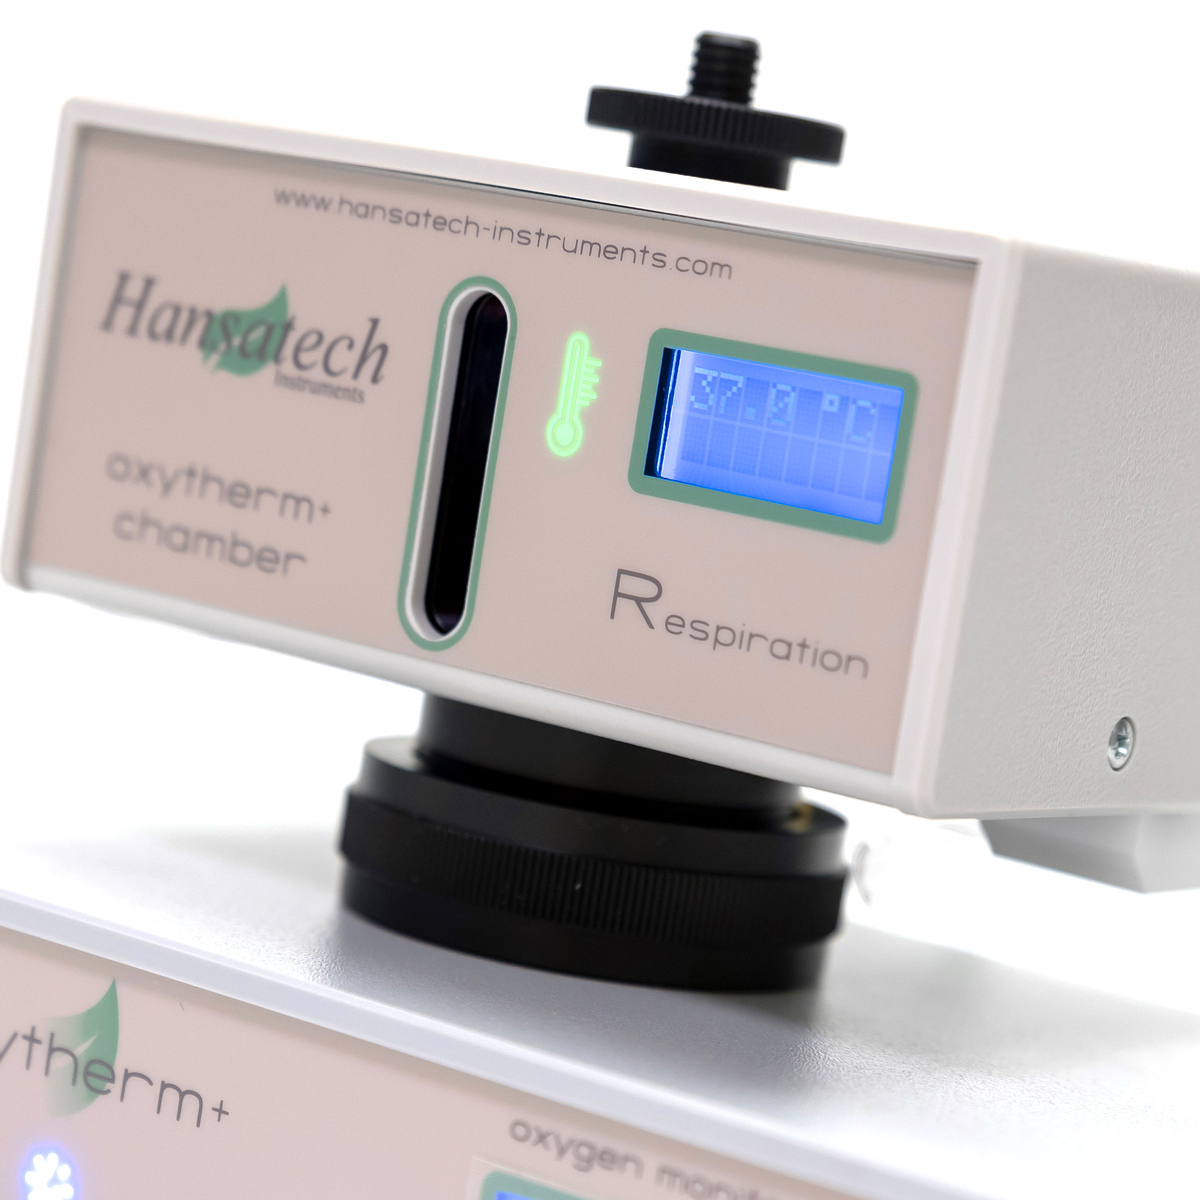 Oxytherm+ Respiration Electrode Chamber | Hansatech Instruments | Oxygen electrode and chlorophyll fluorescence measurement systems for cellular respiration and photosynthesis research